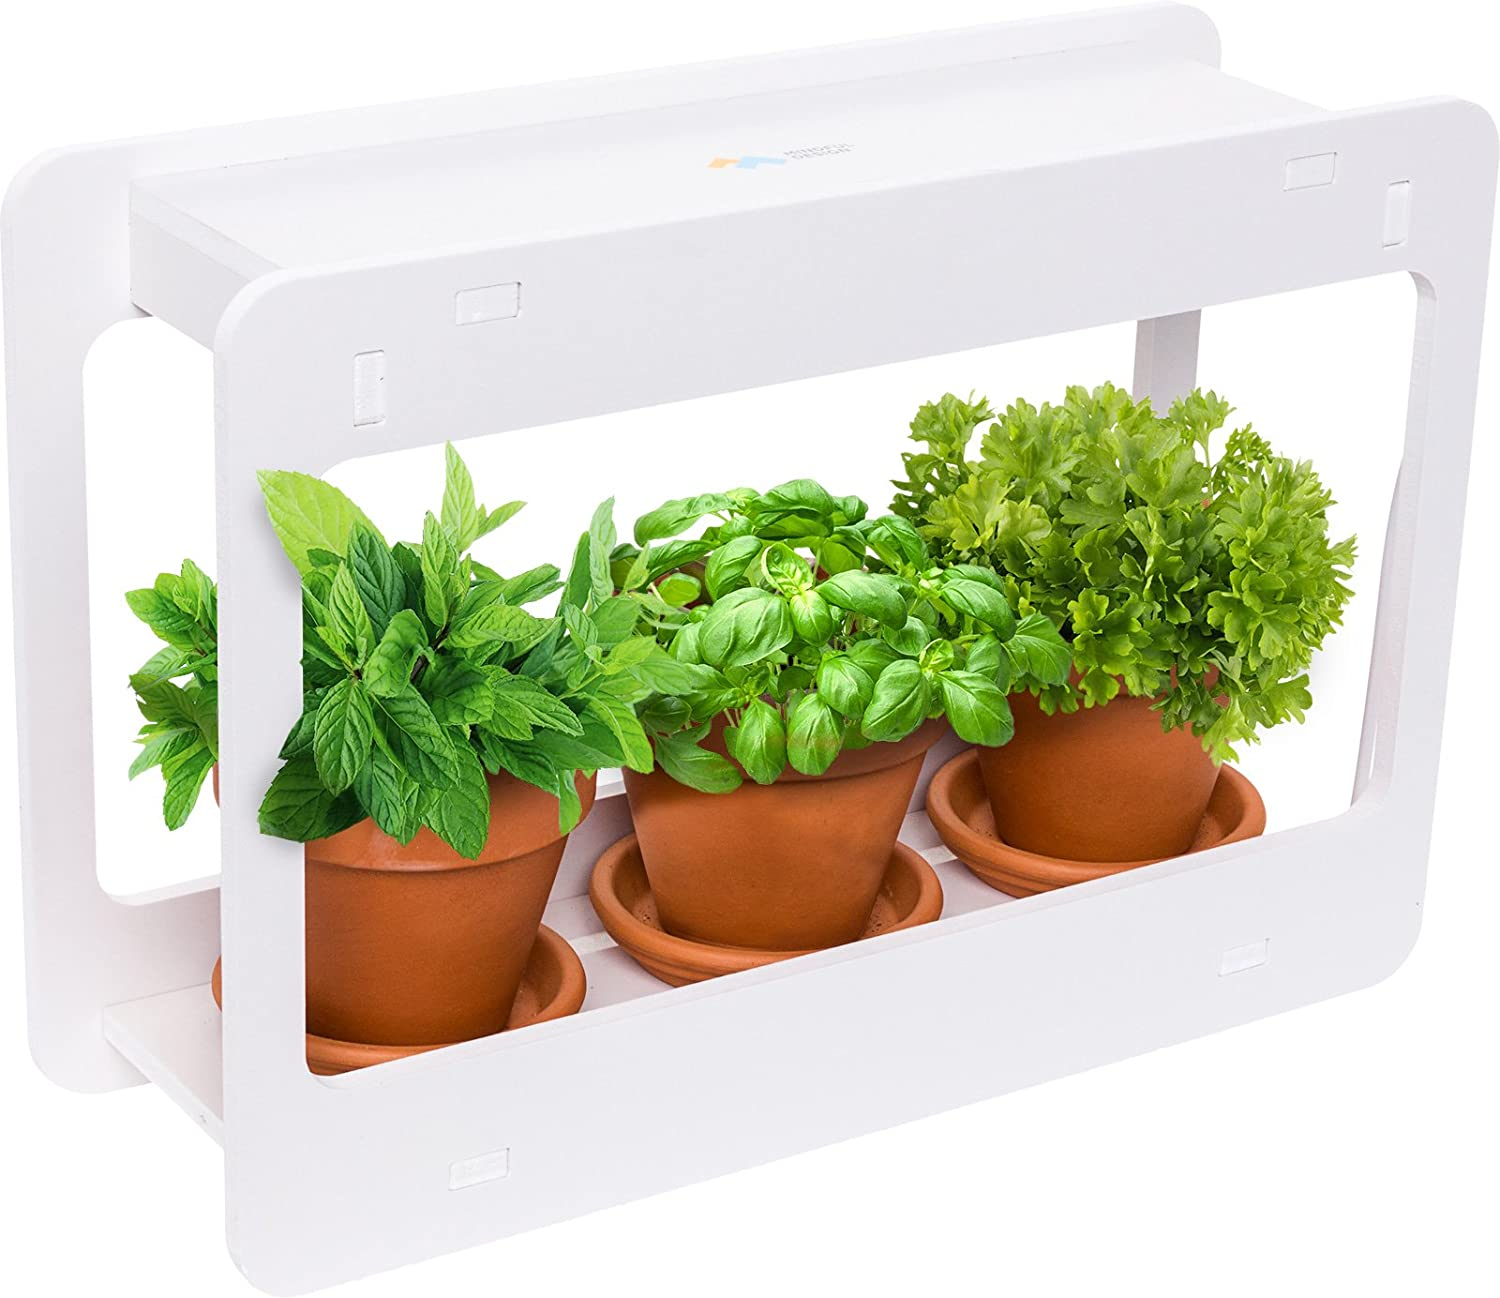 https://www.eatingwell.com/article/7884325/the-best-herb-garden-kits-for-every-type-of-gardener-even-if-you-kill-every-houseplant-you-ve-ever-met/71pao5ymel-_ac_sl1500_/